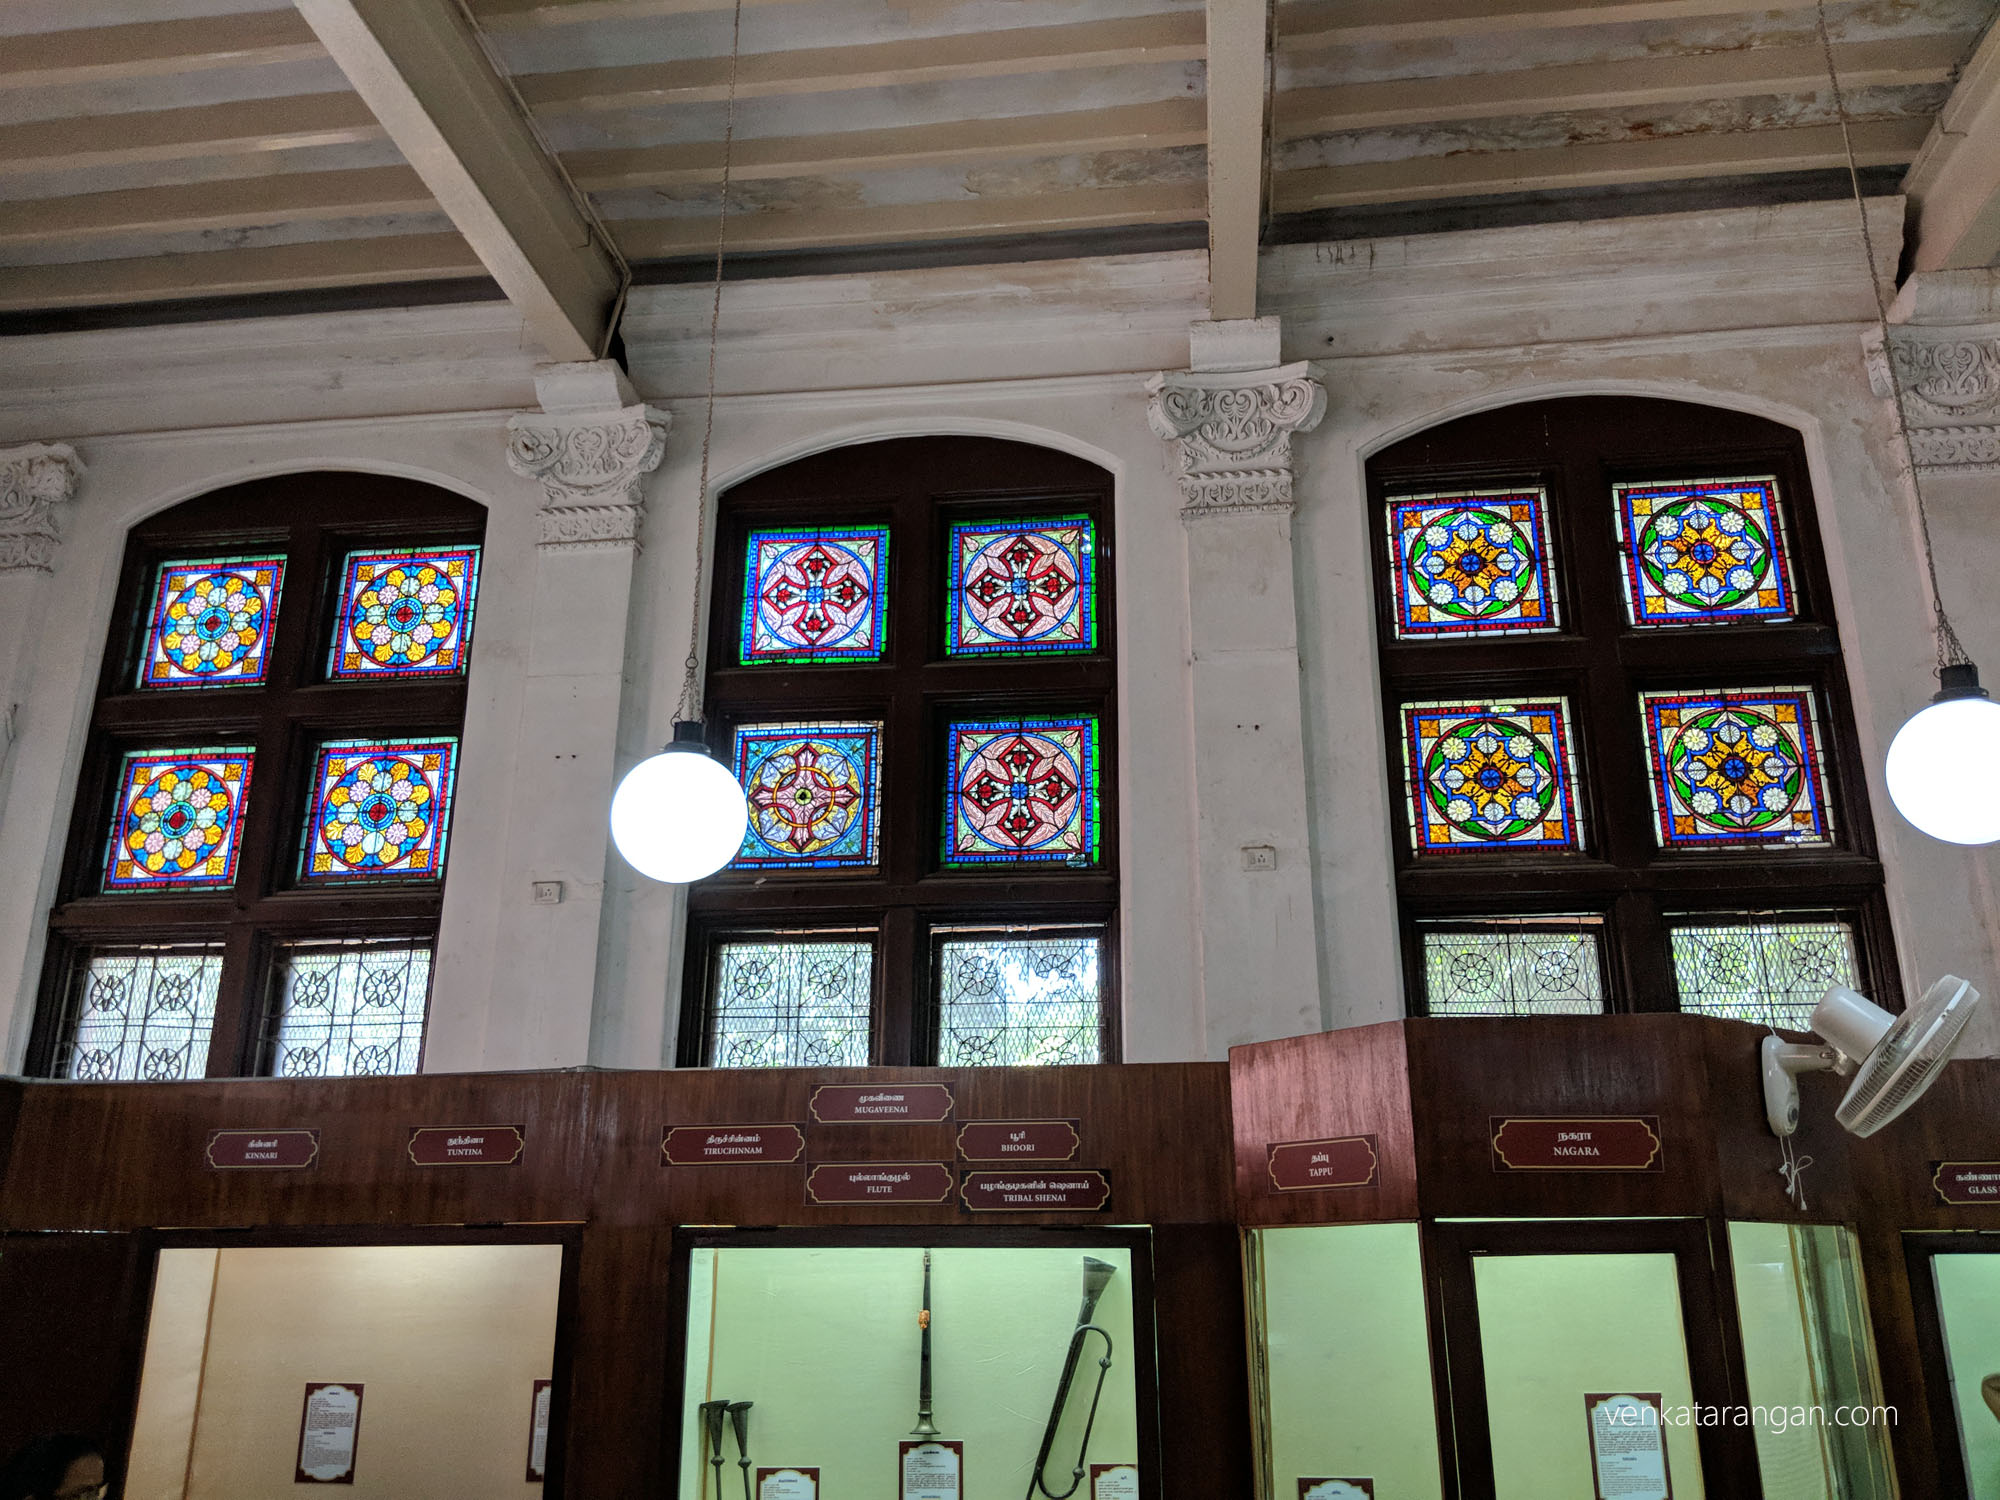 Look at the intricate stained glass work